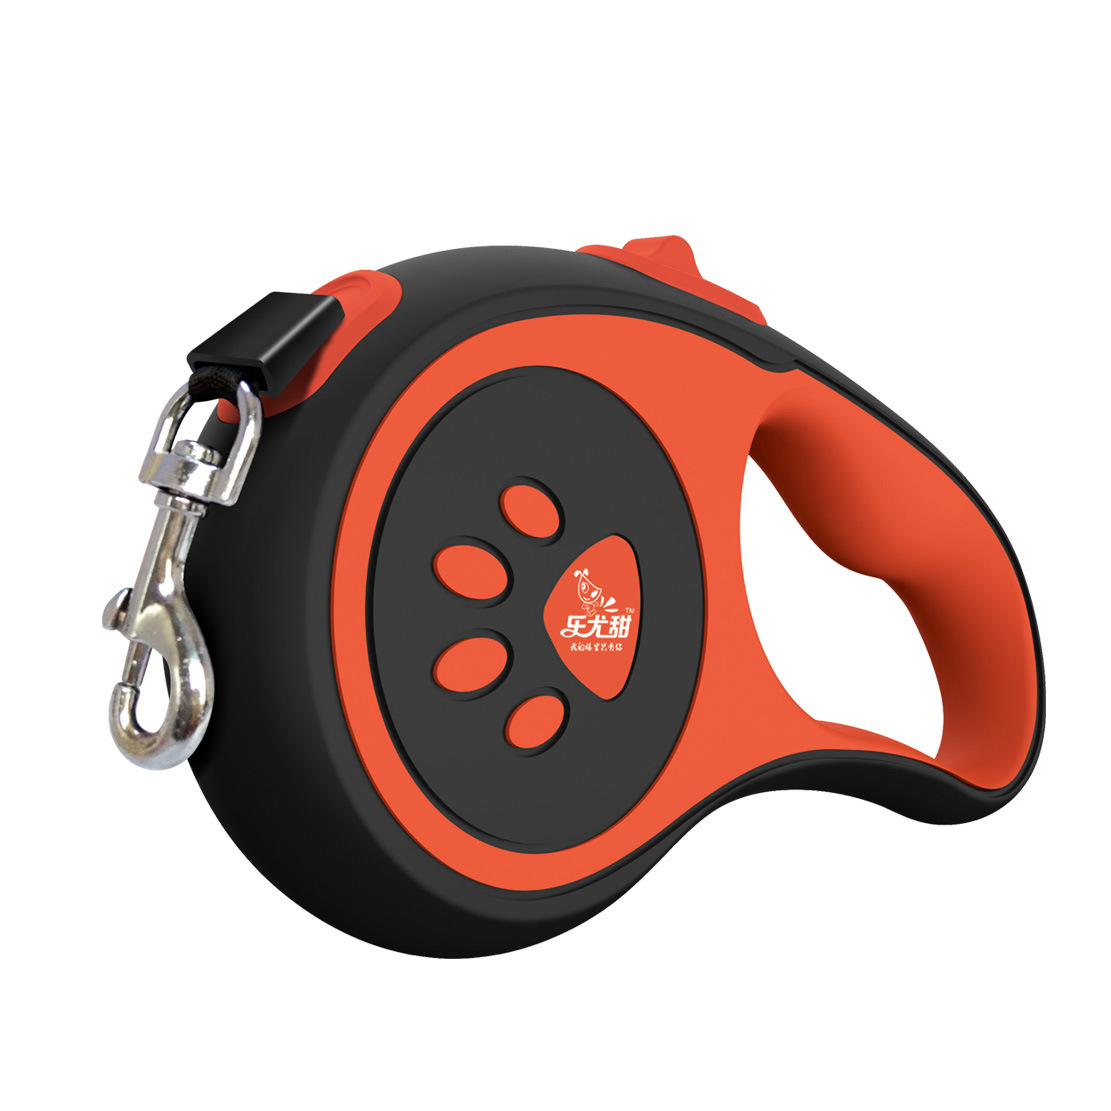 Dog Automatic Telescopic Tractor Non-Slip Grip Handle Pet Hand Holding Rope Pet Supplies